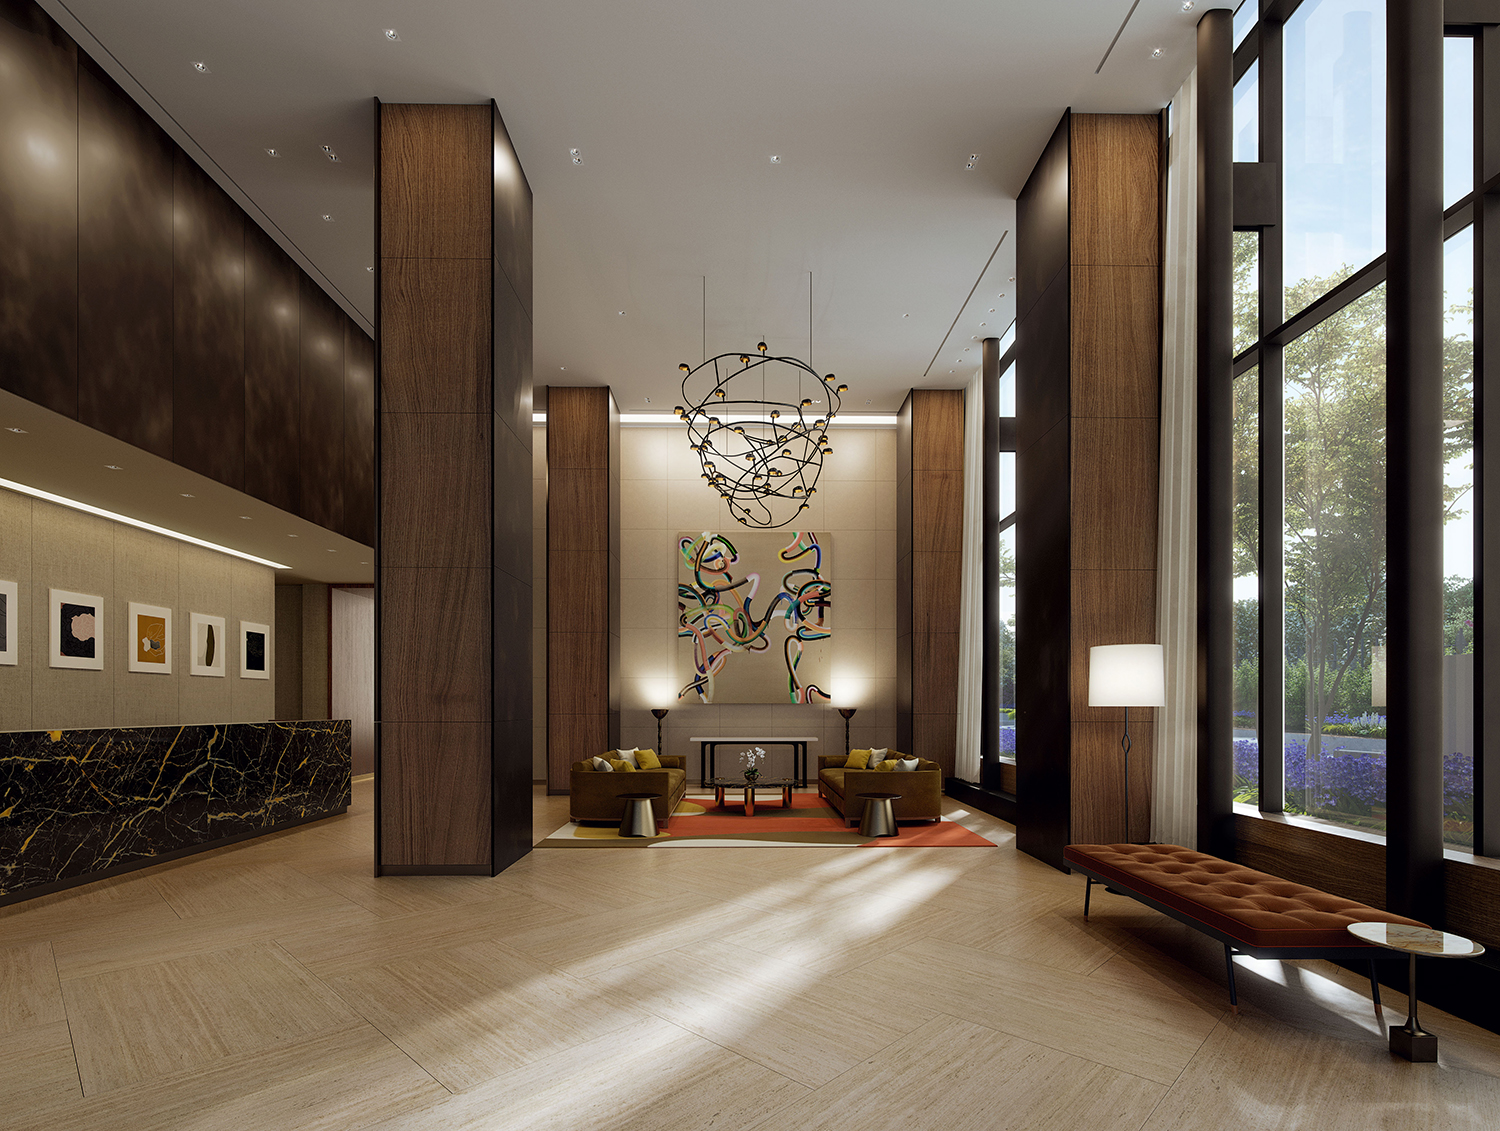 Rendering of the lobby at the Easton. Credit: Moso Studio